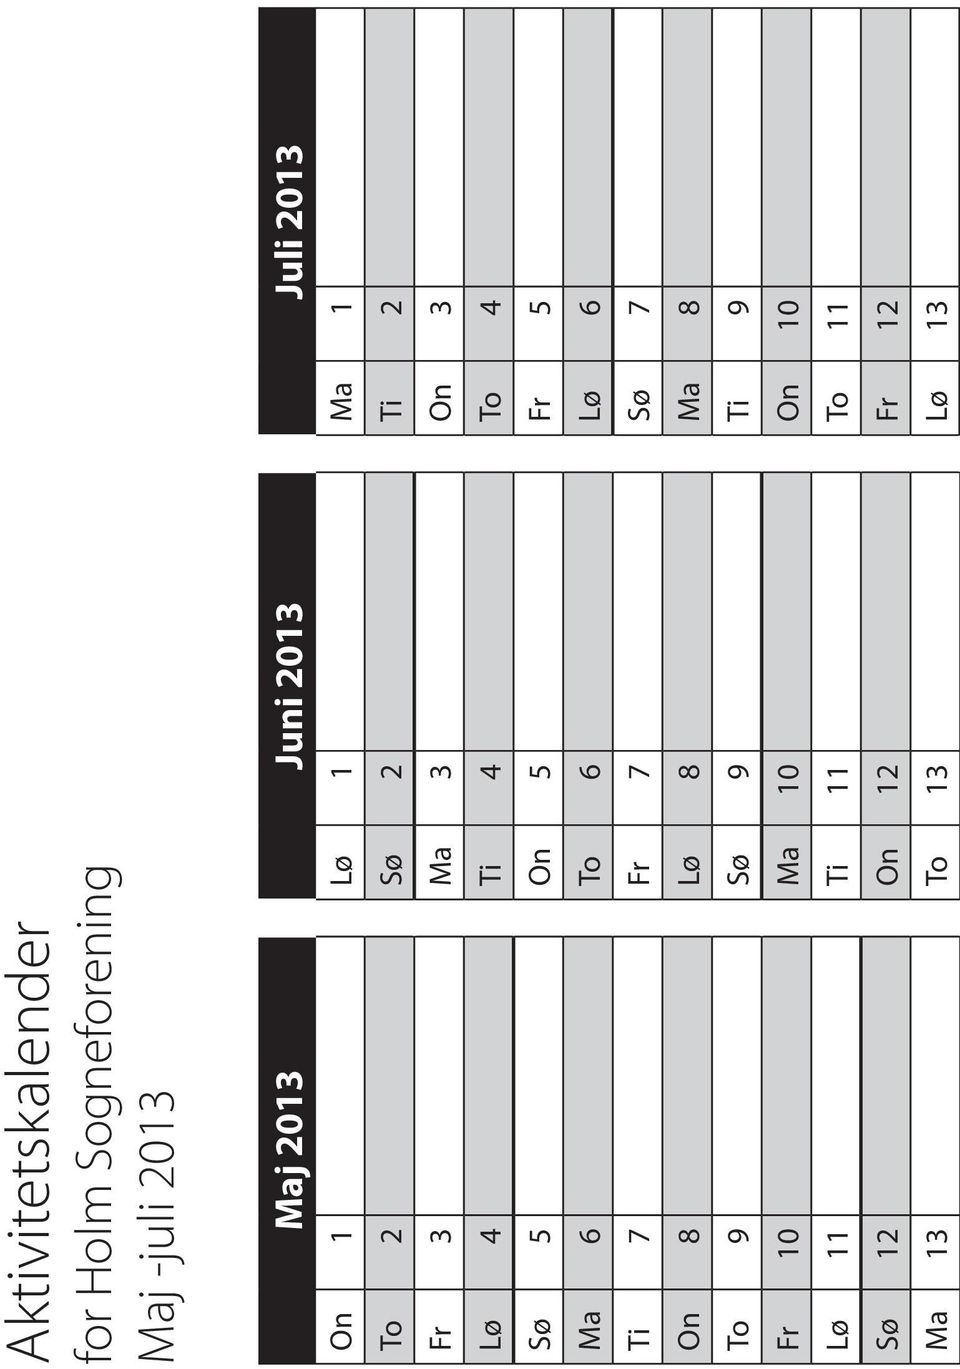 4 Sø 5 On 5 Fr 5 Ma 6 To 6 Lø 6 Ti 7 Fr 7 Sø 7 On 8 Lø 8 Ma 8 To 9 Sø 9